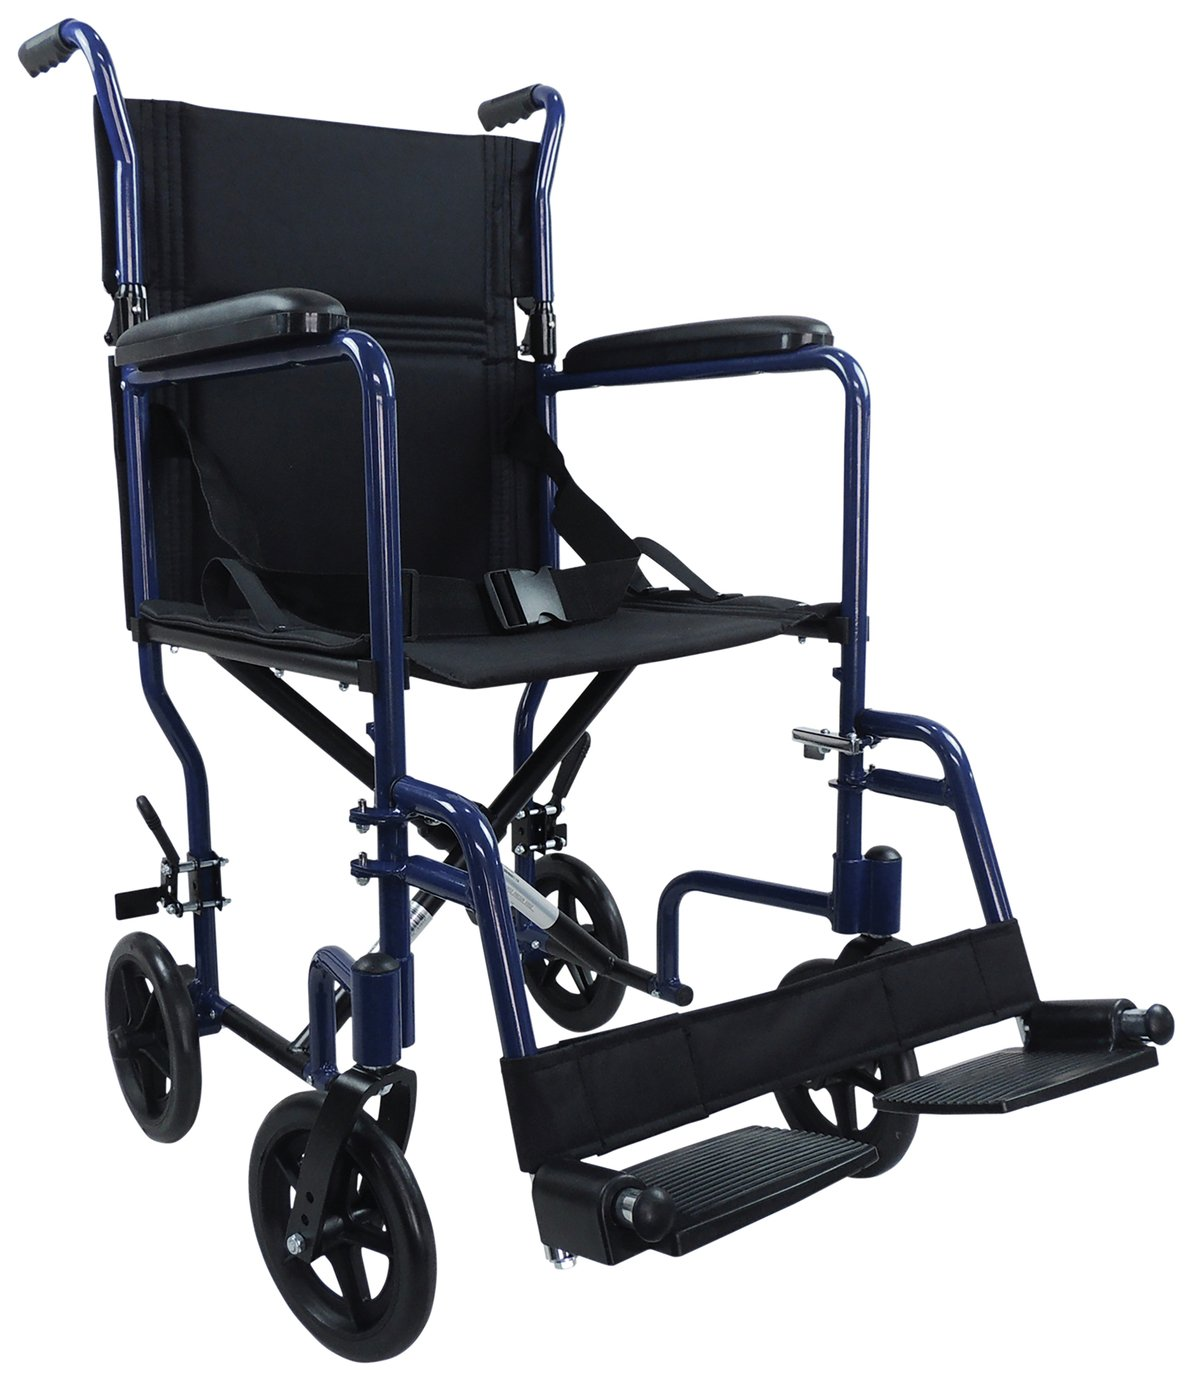 Aidapt Transport Aluminium Wheelchair - Bue